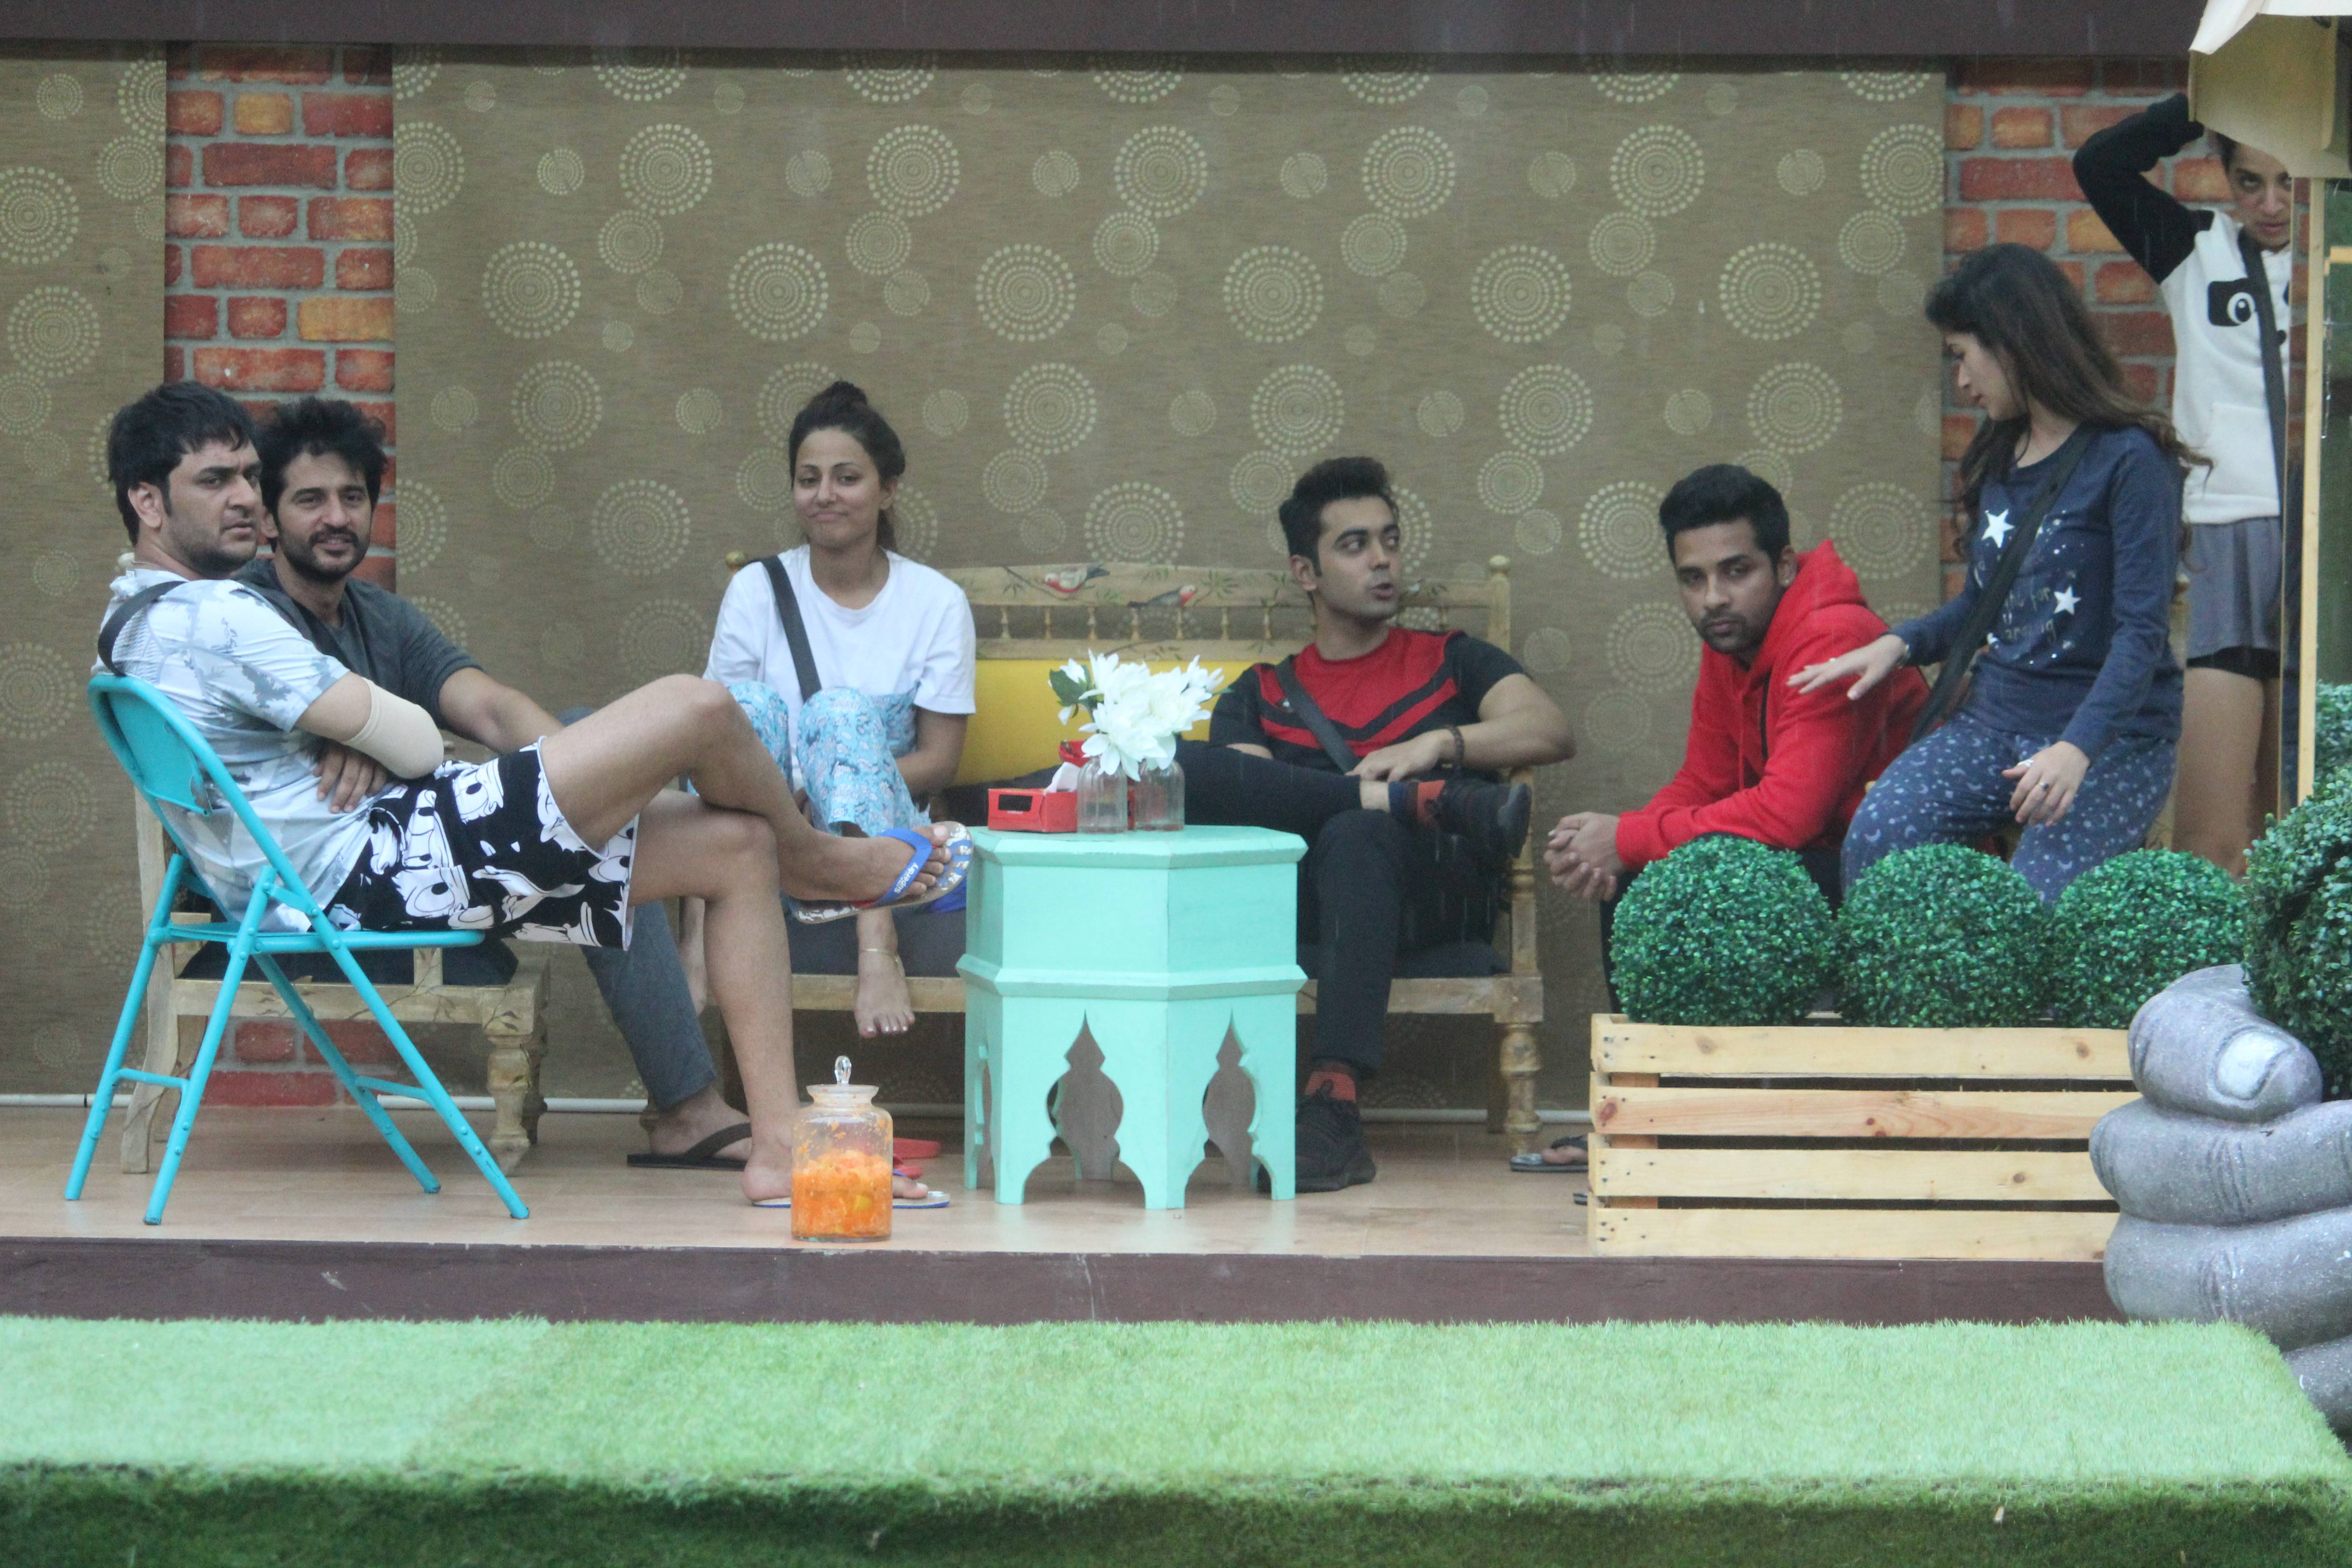 Splash: It's chill time by the pool for Bigg Boss housemates!